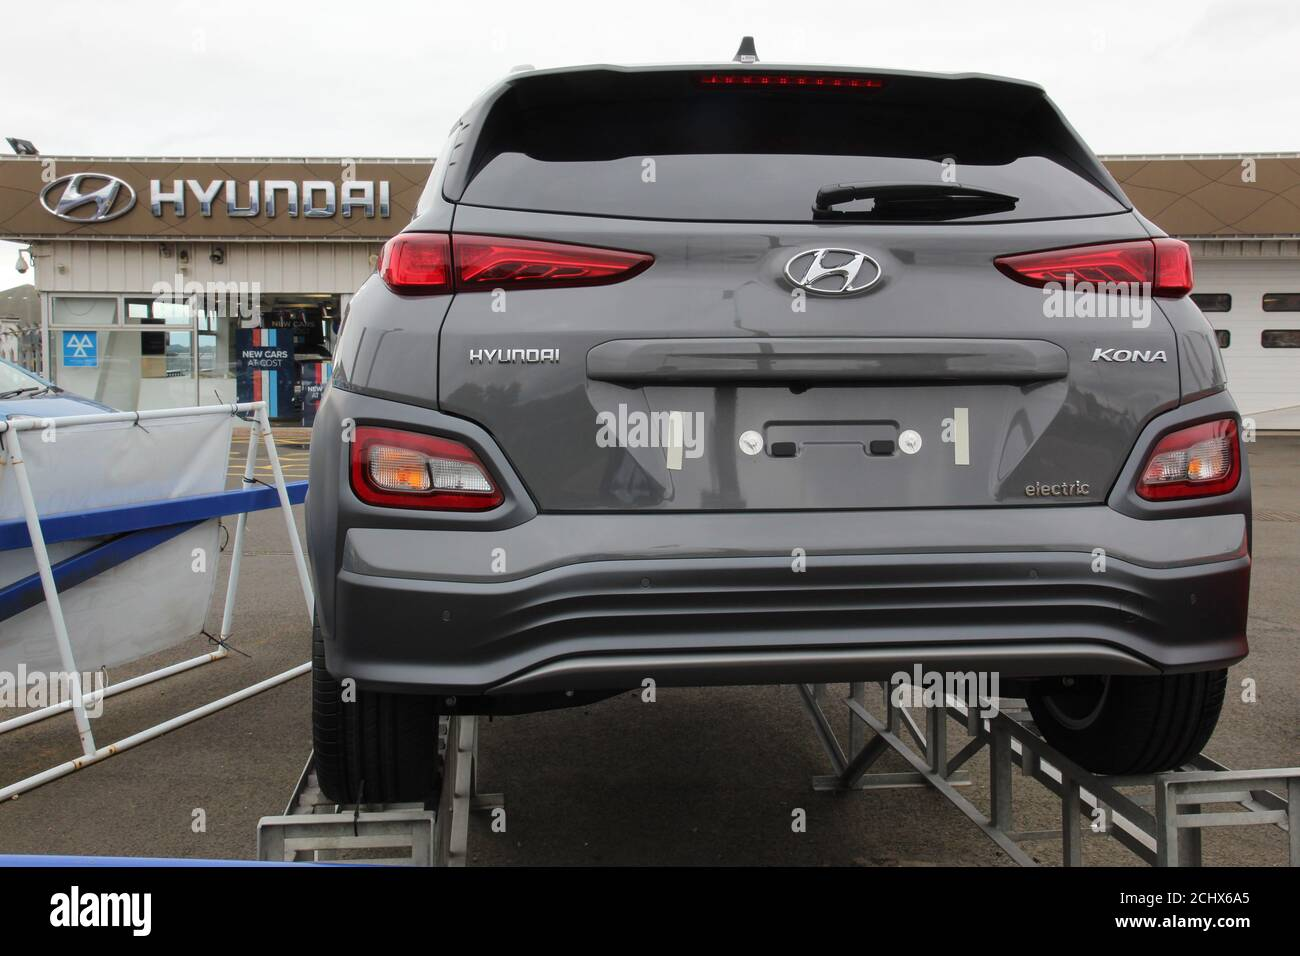 Brand New Unsold Hyundai Electric Car On Display Outside Car Dealership Stock Photo Alamy